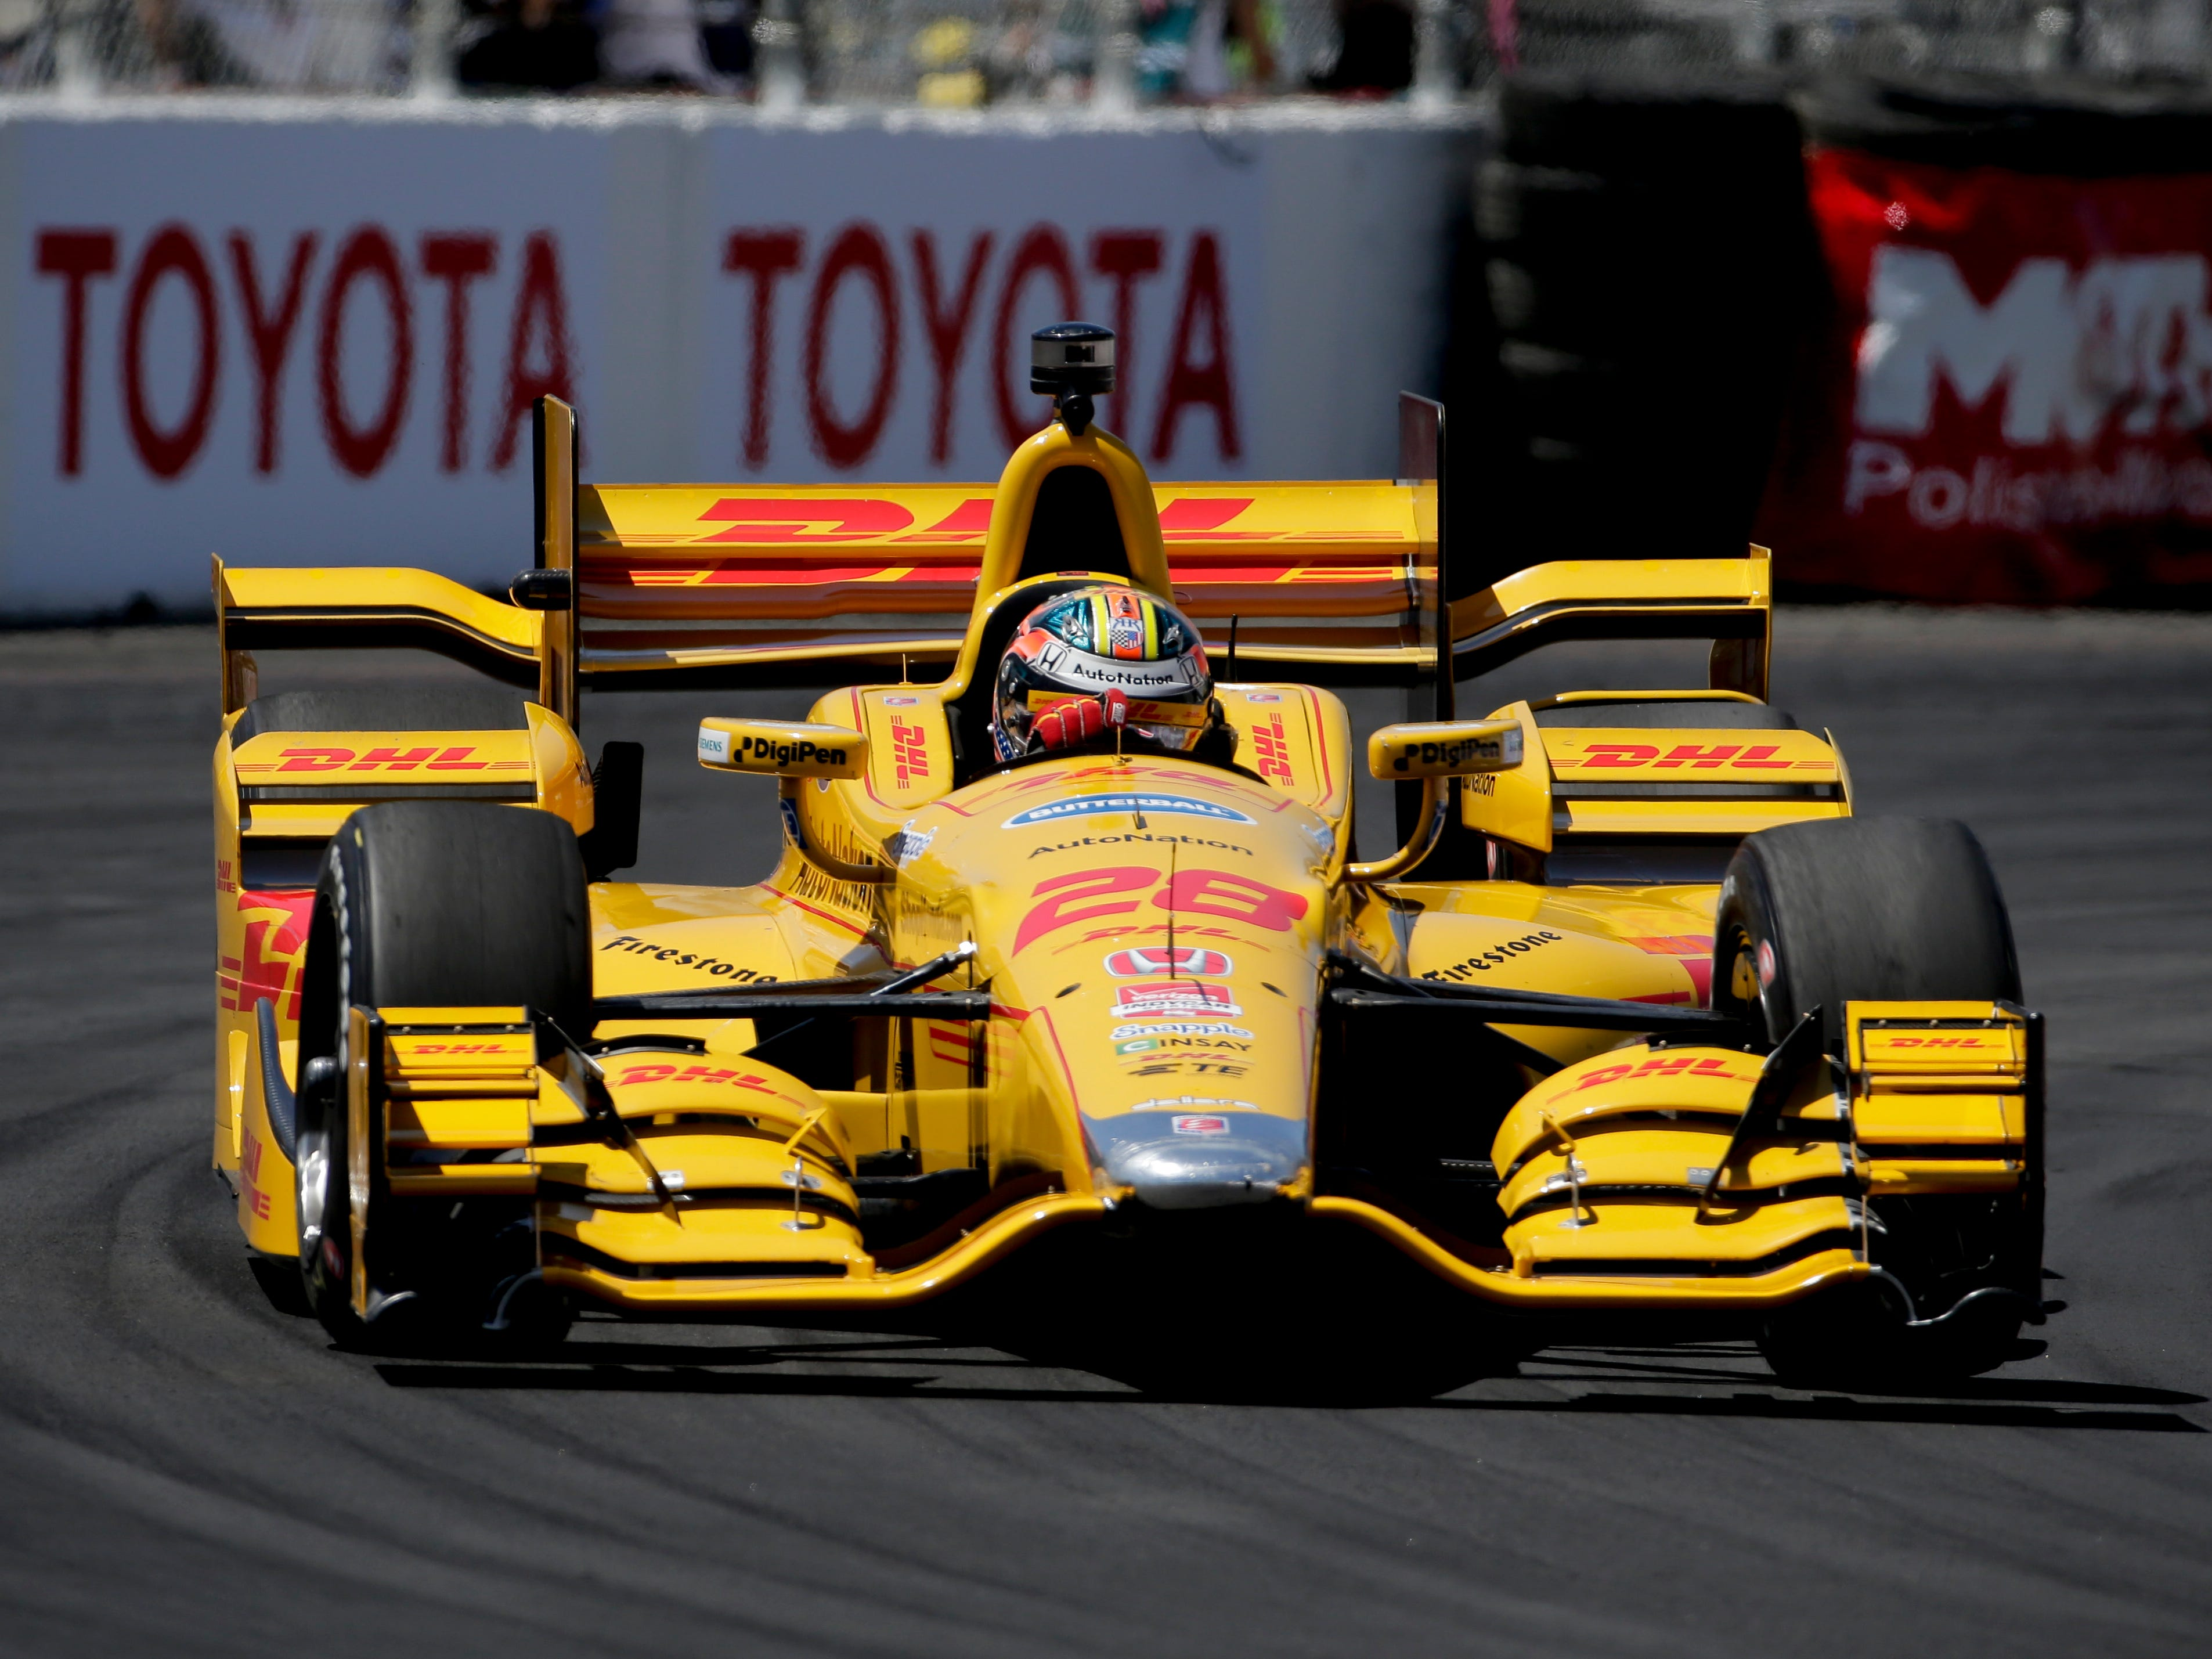 Ryan Hunter-Reay drives during a practice run for the IndyCar race at the Toyota Grand Prix of Long Beach on Friday, April 17, 2015 in Long Beach, Calif. (AP Photo/Chris Carlson)